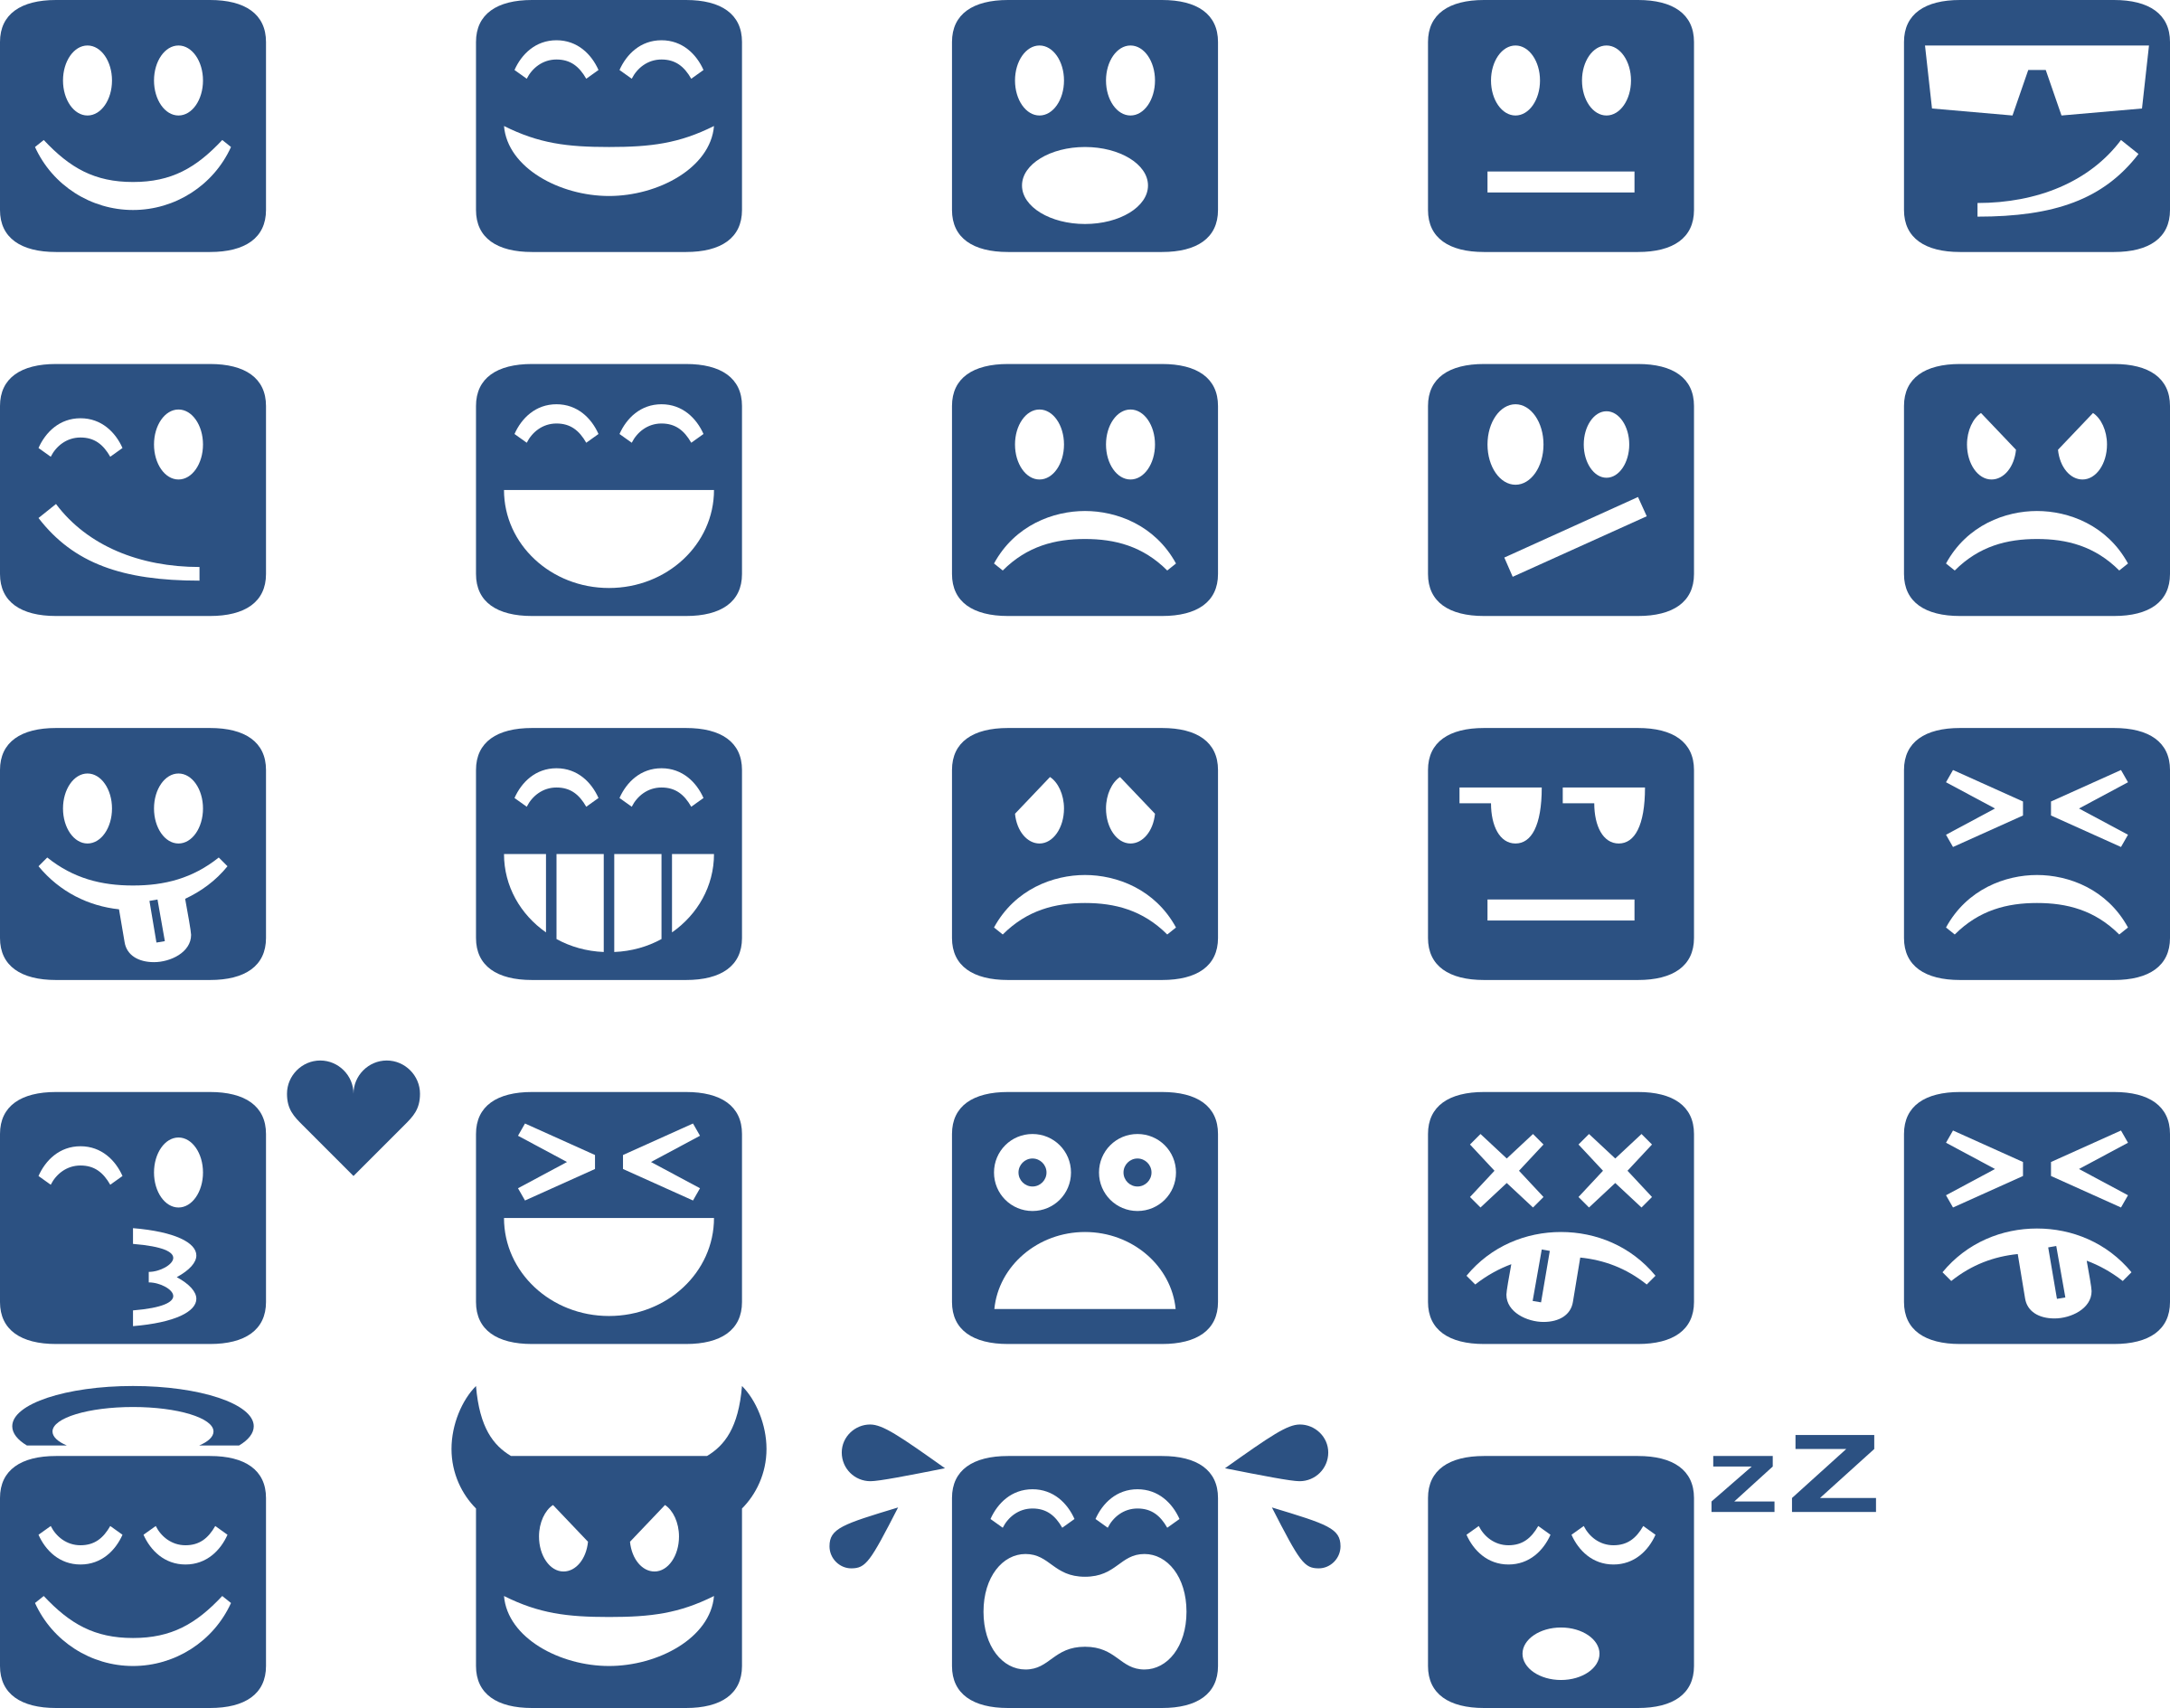 Square Emoticons by Sev